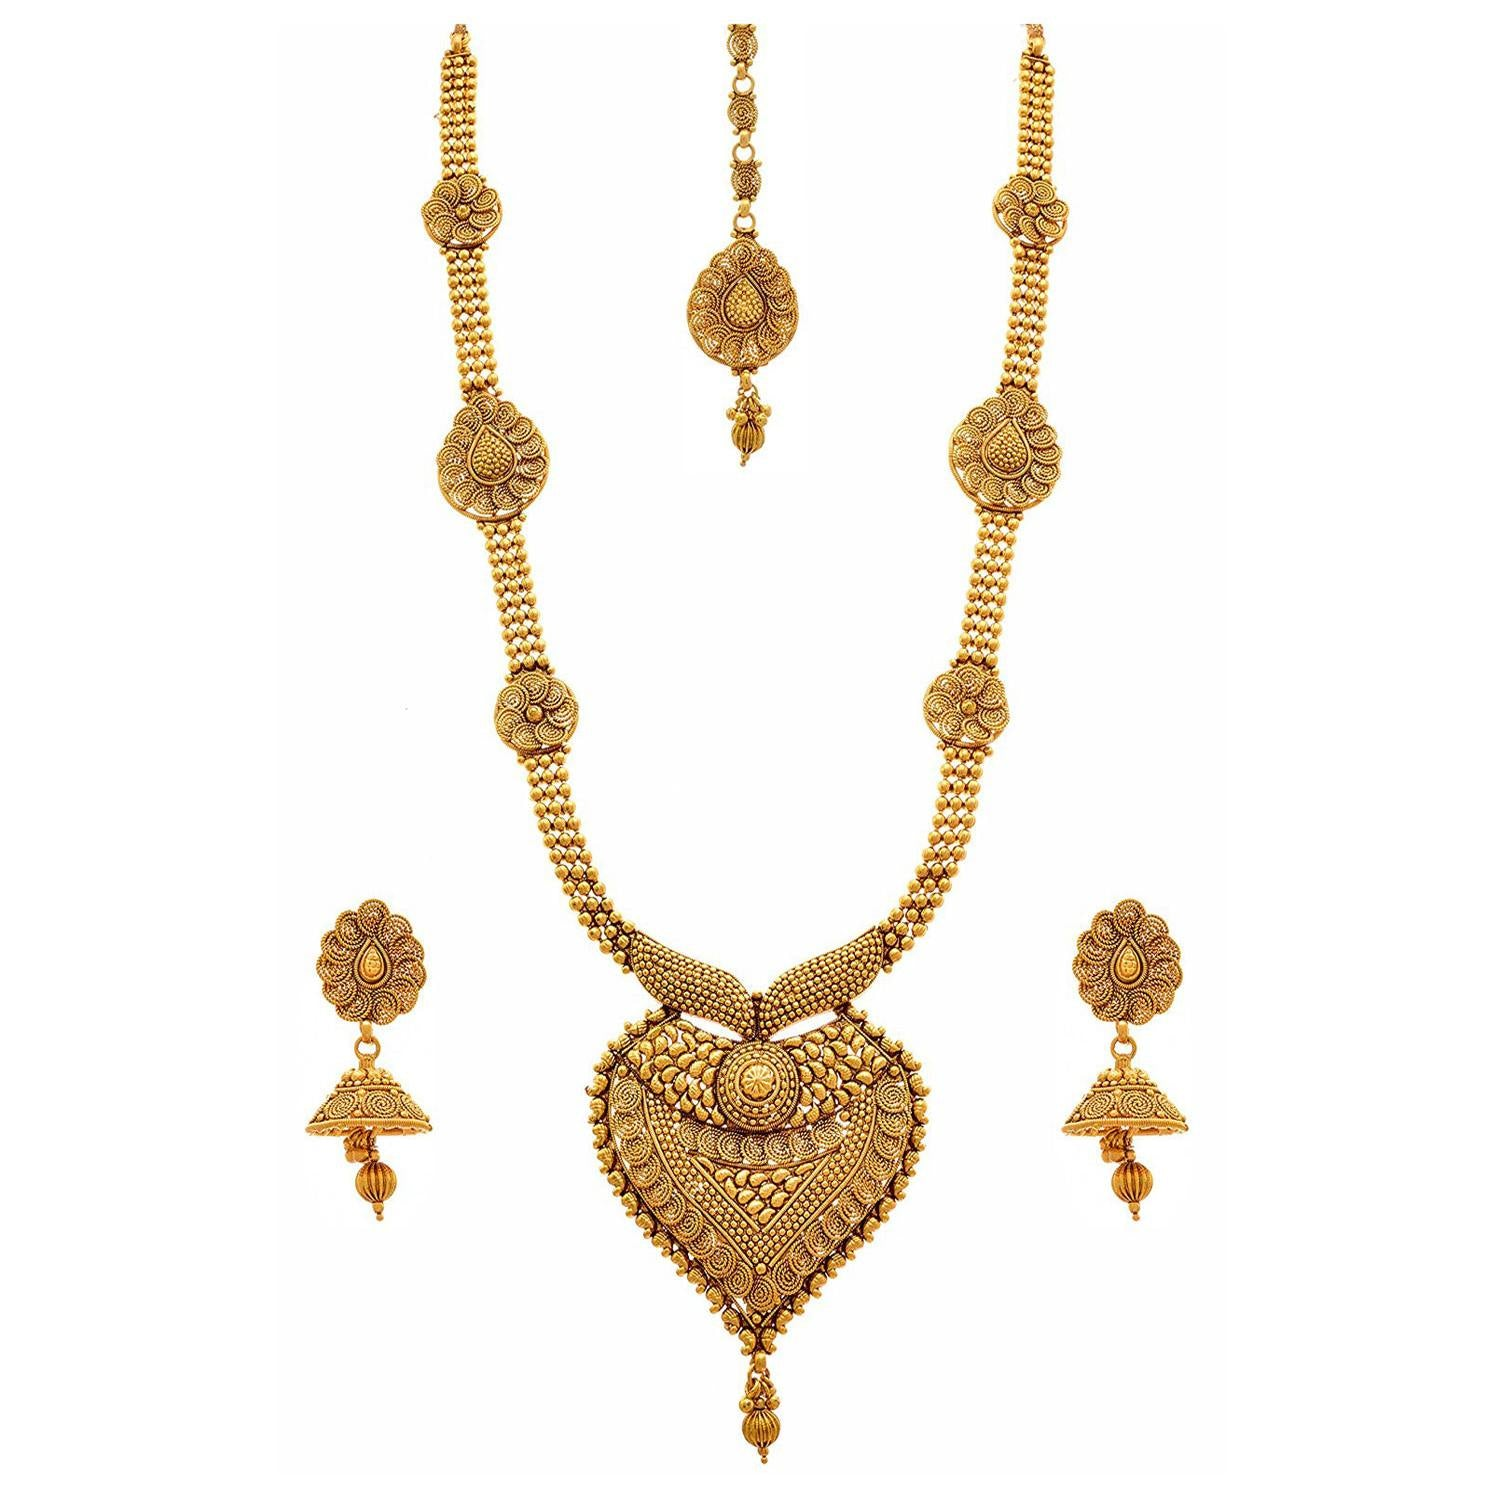 Traditional Ethnic One Gram Gold Plated Spiral Designer Long Necklace Set / Jewellery Set With Jhumka Earrings For Women